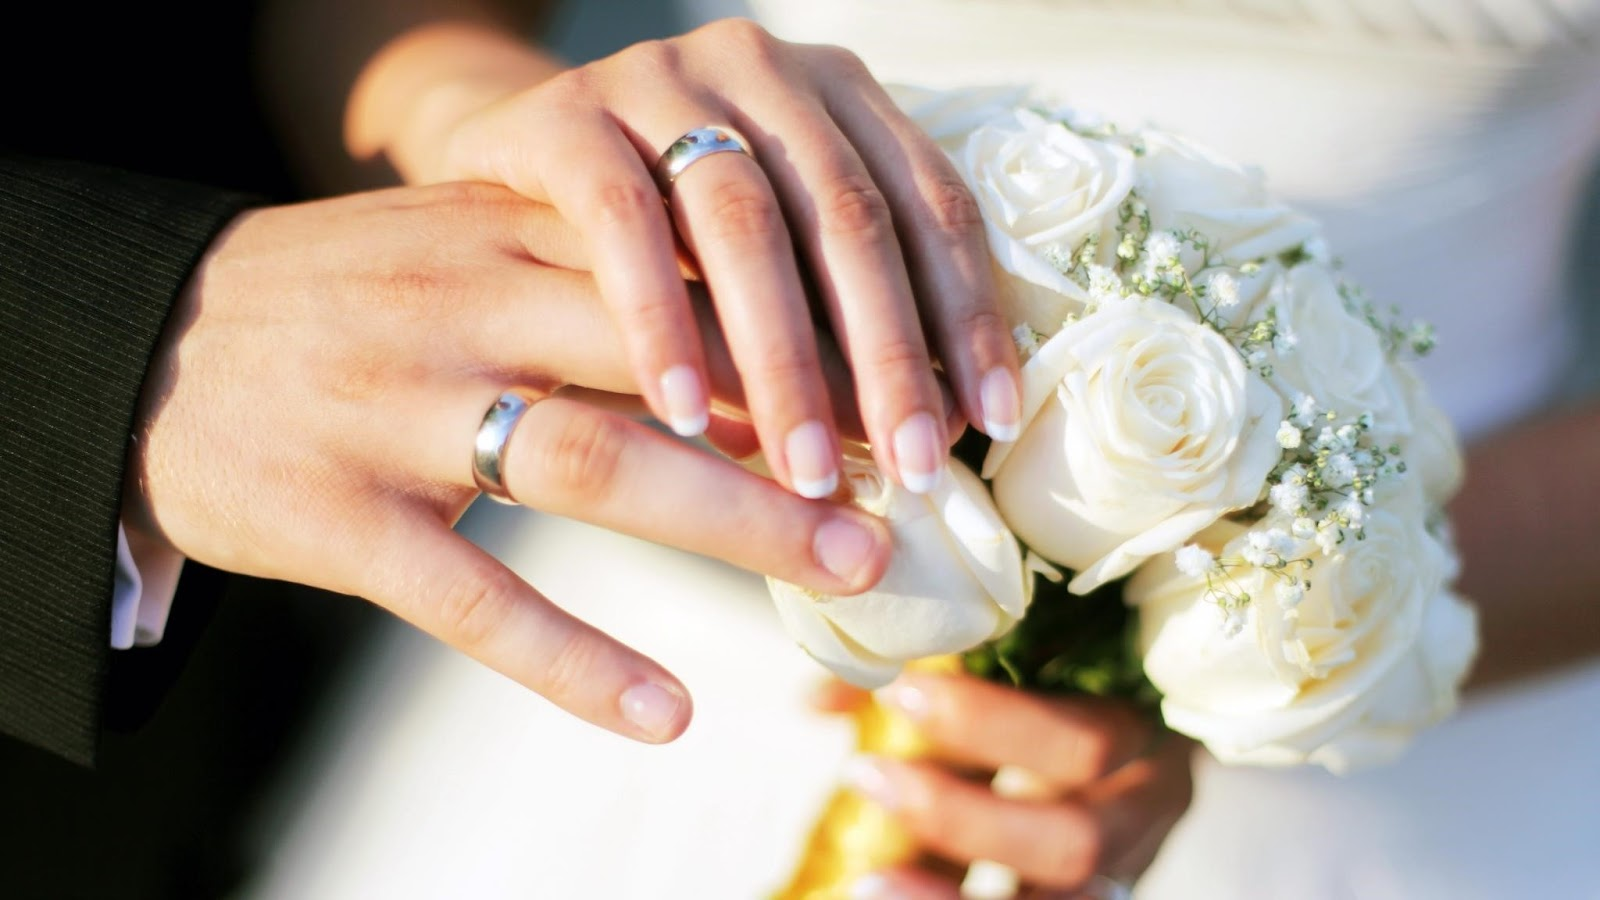 Losing Wedding Ring Vdes Vdes